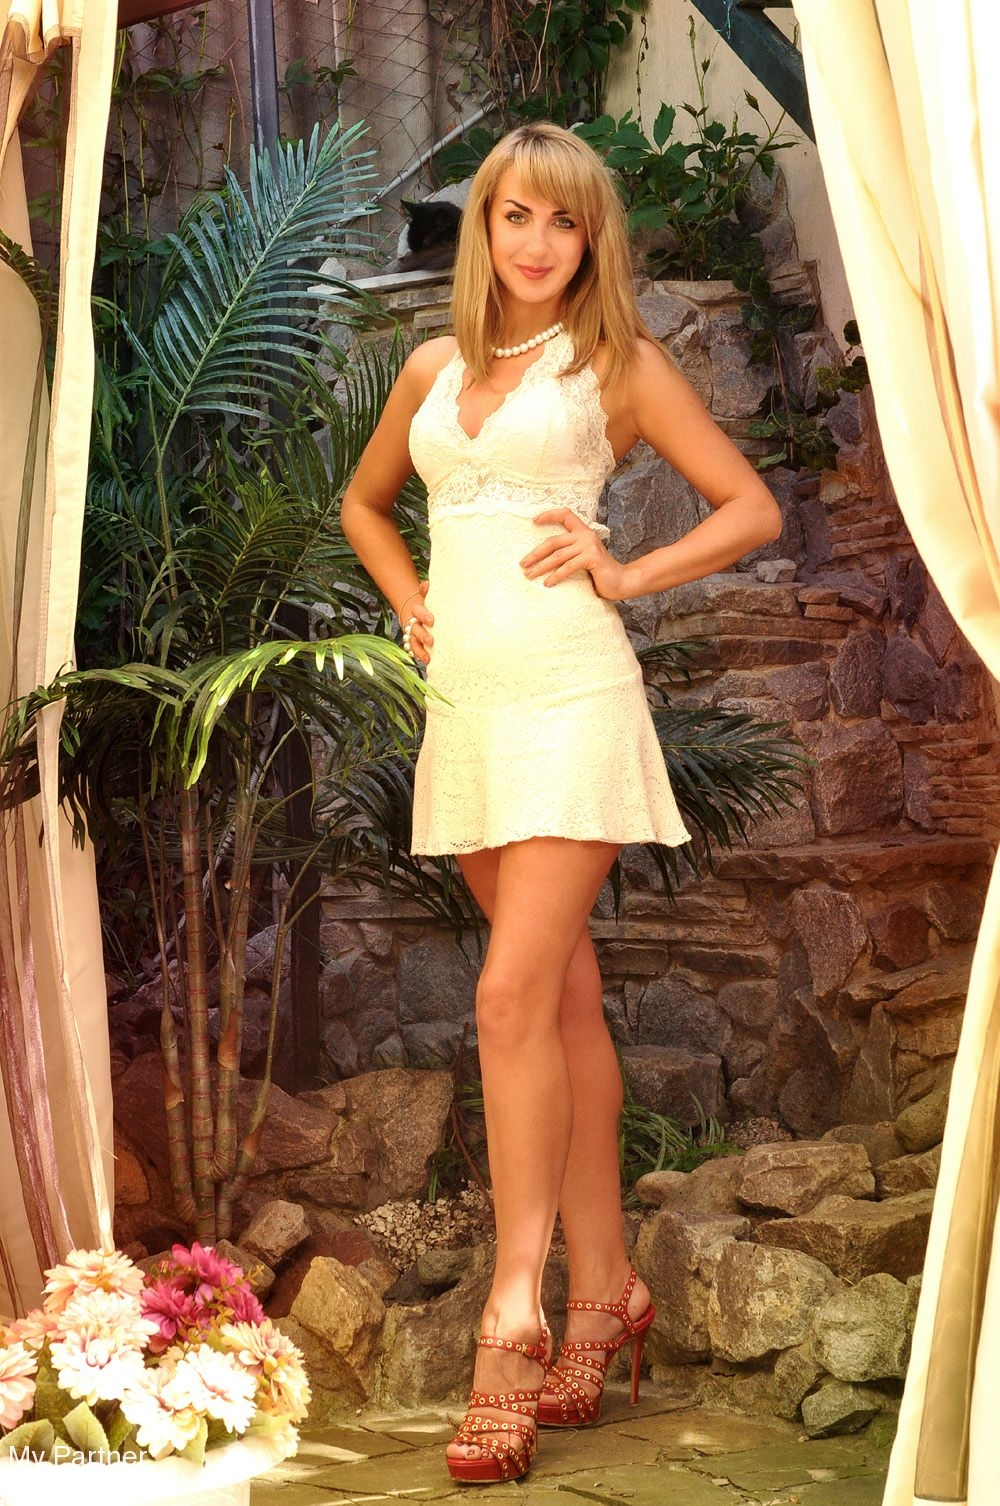 Meet Charming Ukrainian Girl Irina from Kharkov, Ukraine